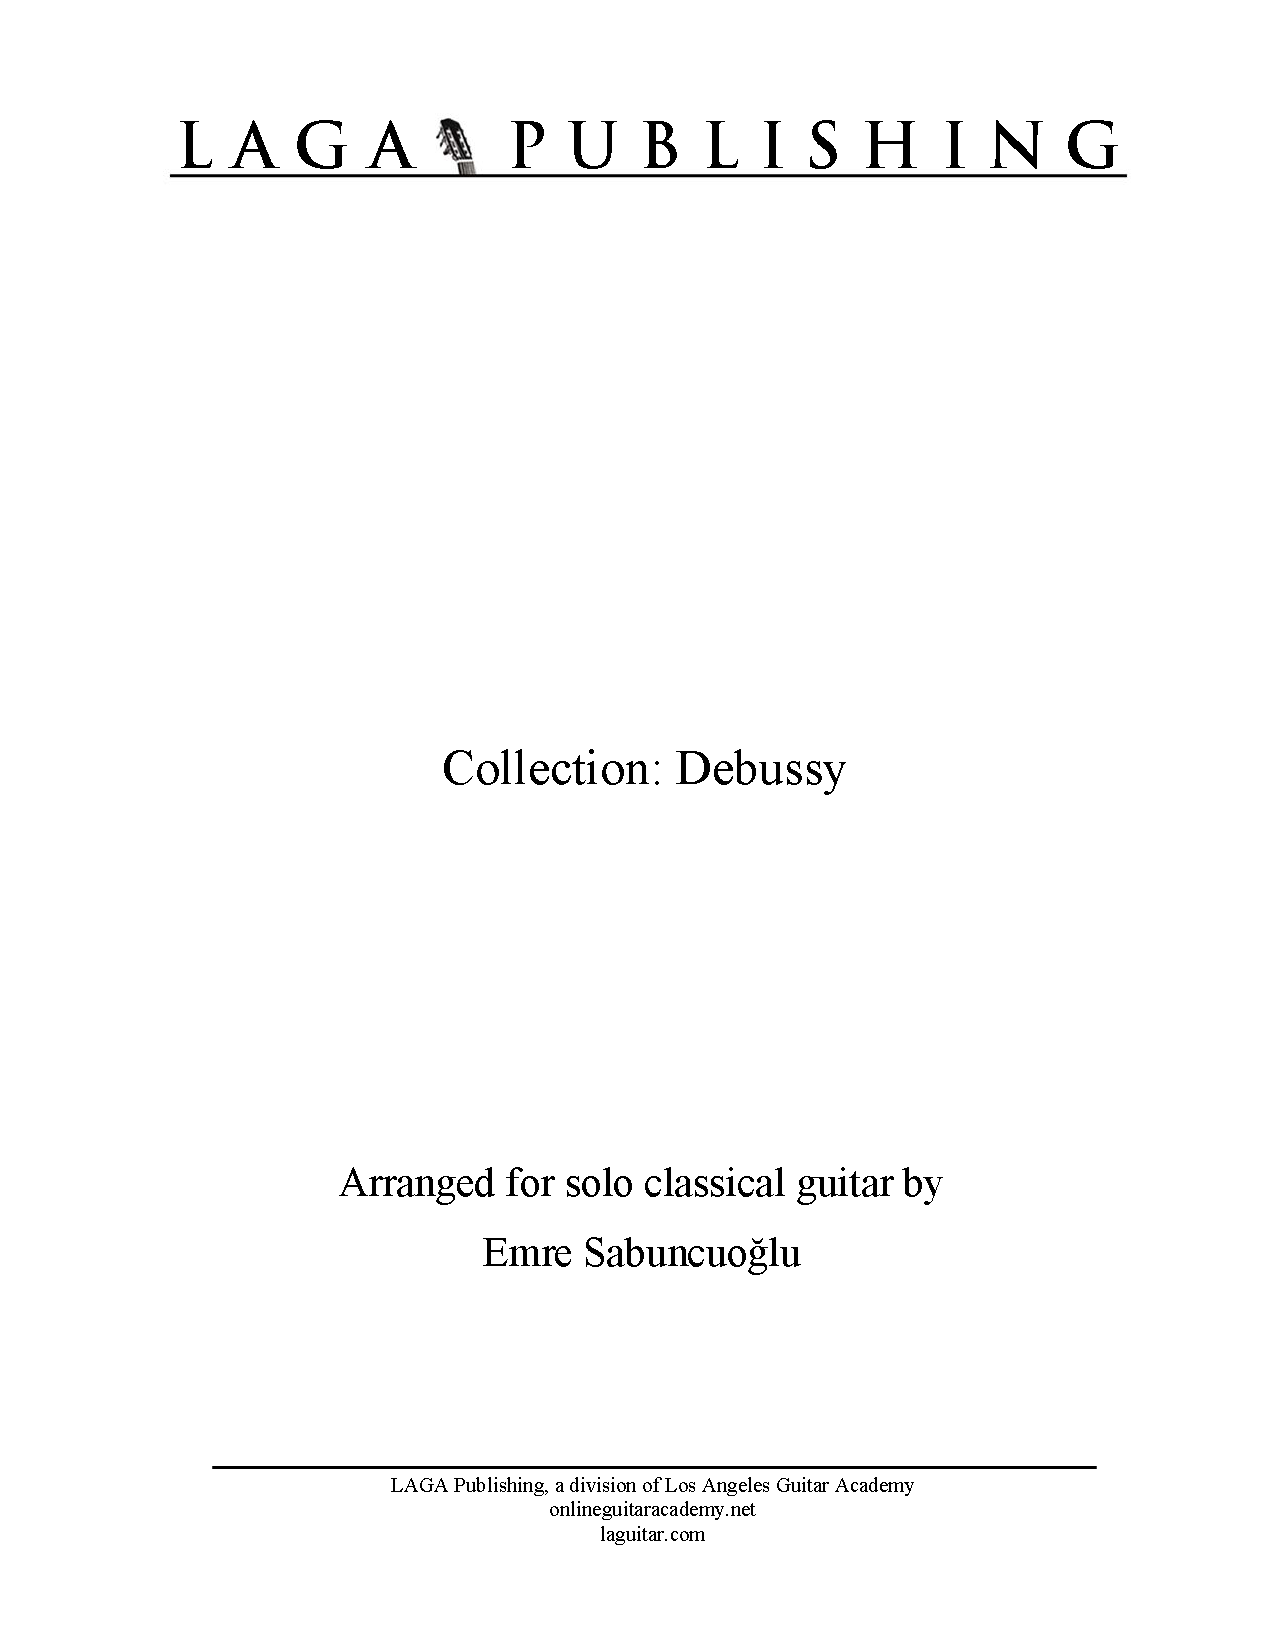 LAGA-Publishing-collection-debussy